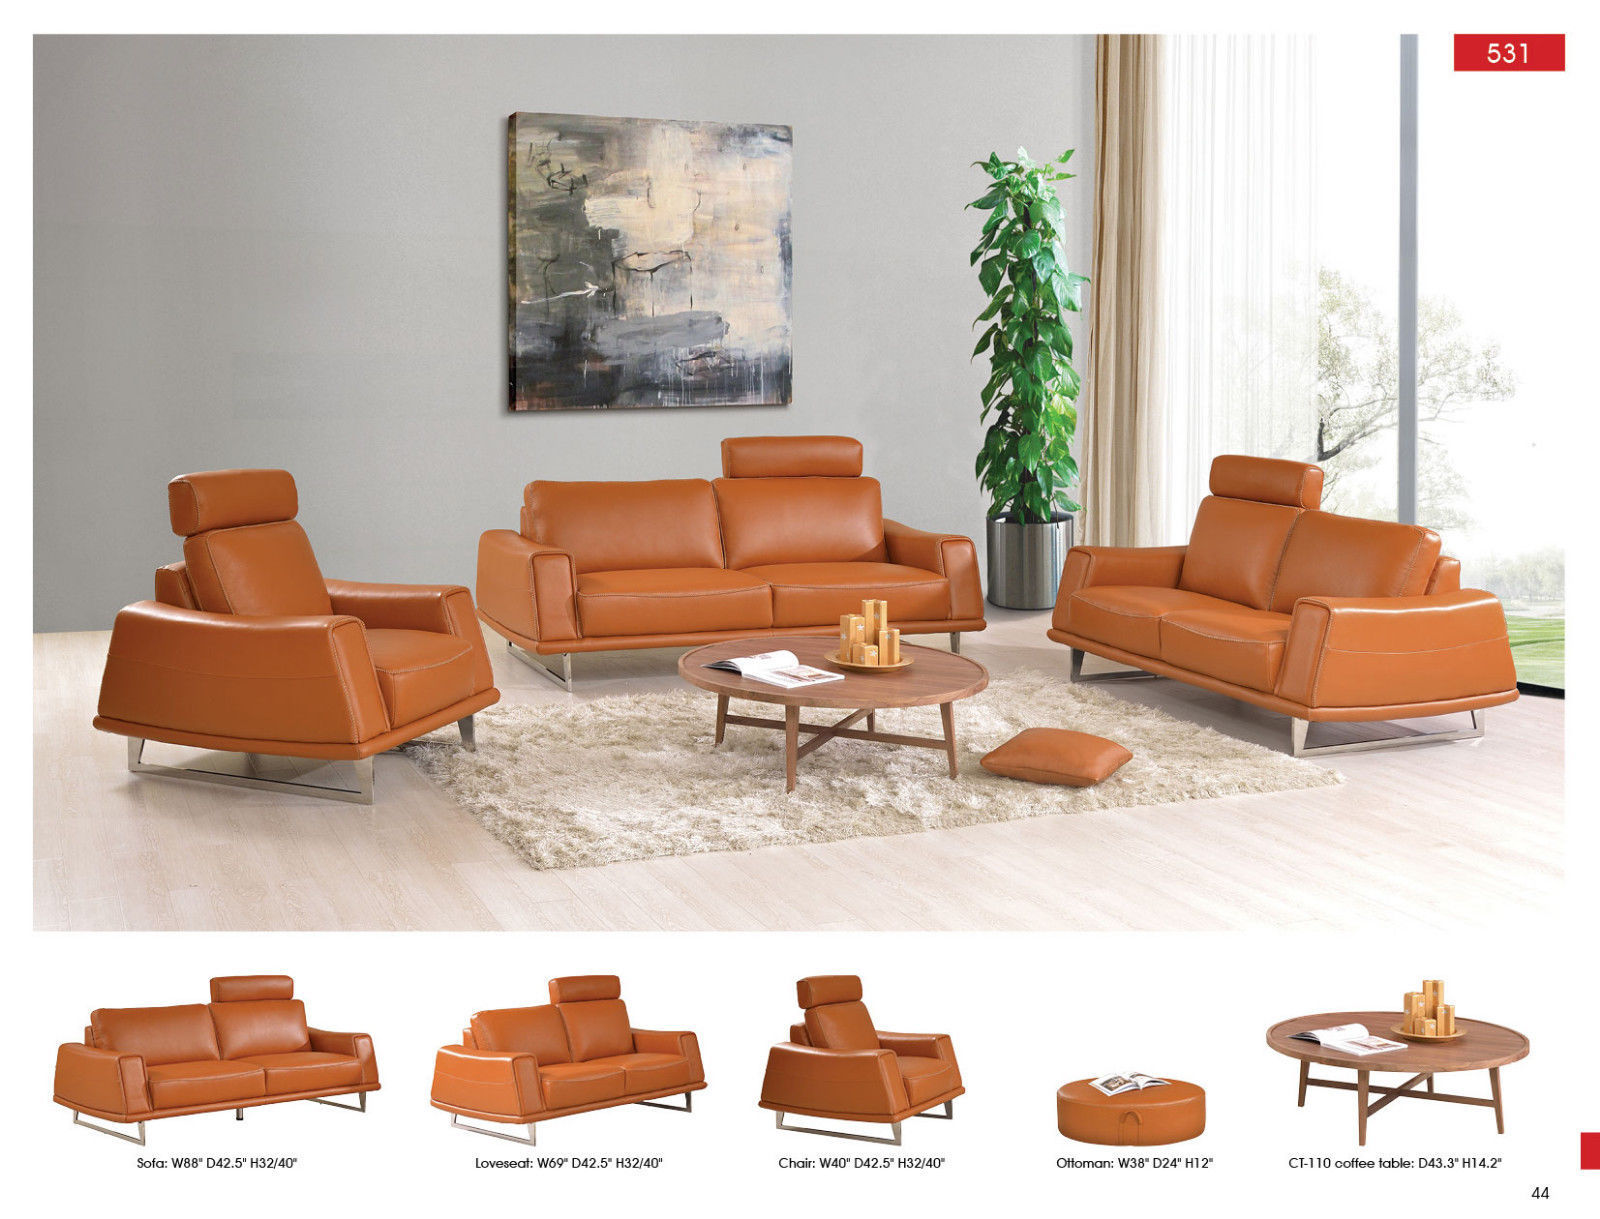 ESF 531 Leather Living Room Sofa Set 3pc. Orange Thick Chic Contemporary Morden